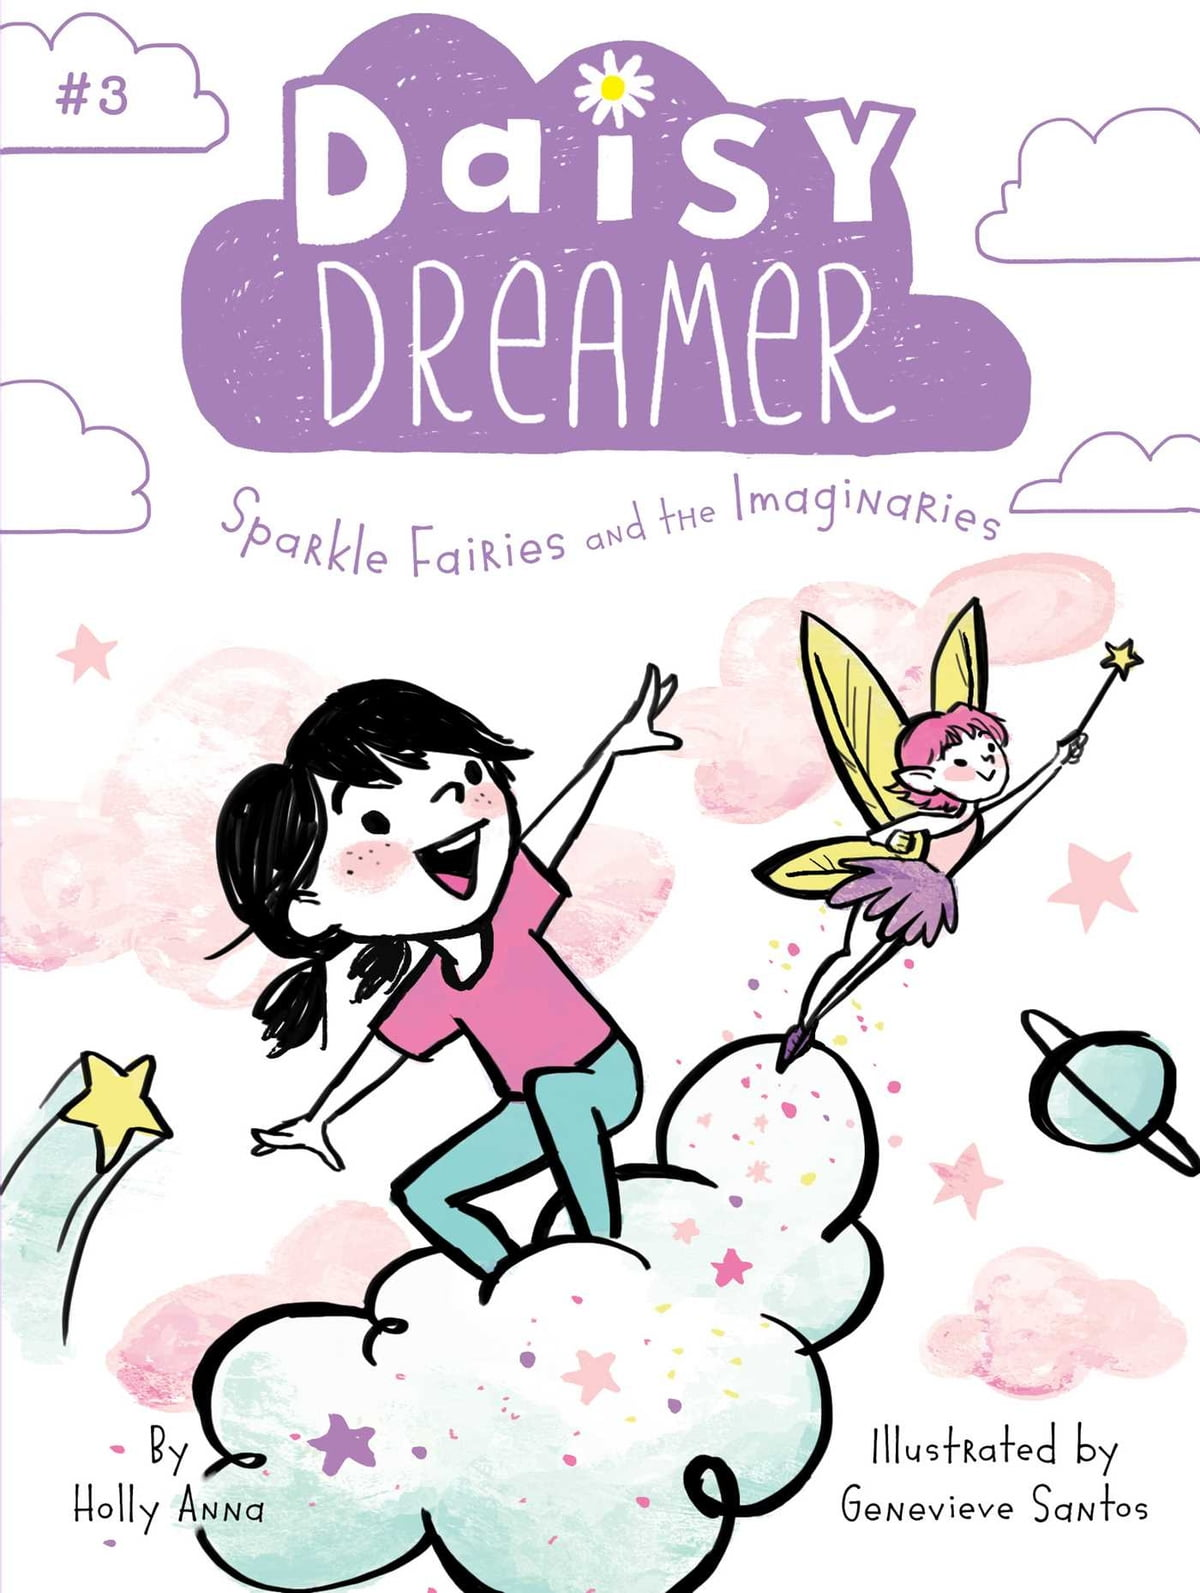 Sparkle fairies and the imaginaries ebook by holly anna sparkle fairies and the imaginaries ebook by holly anna 9781481491877 rakuten kobo fandeluxe Document